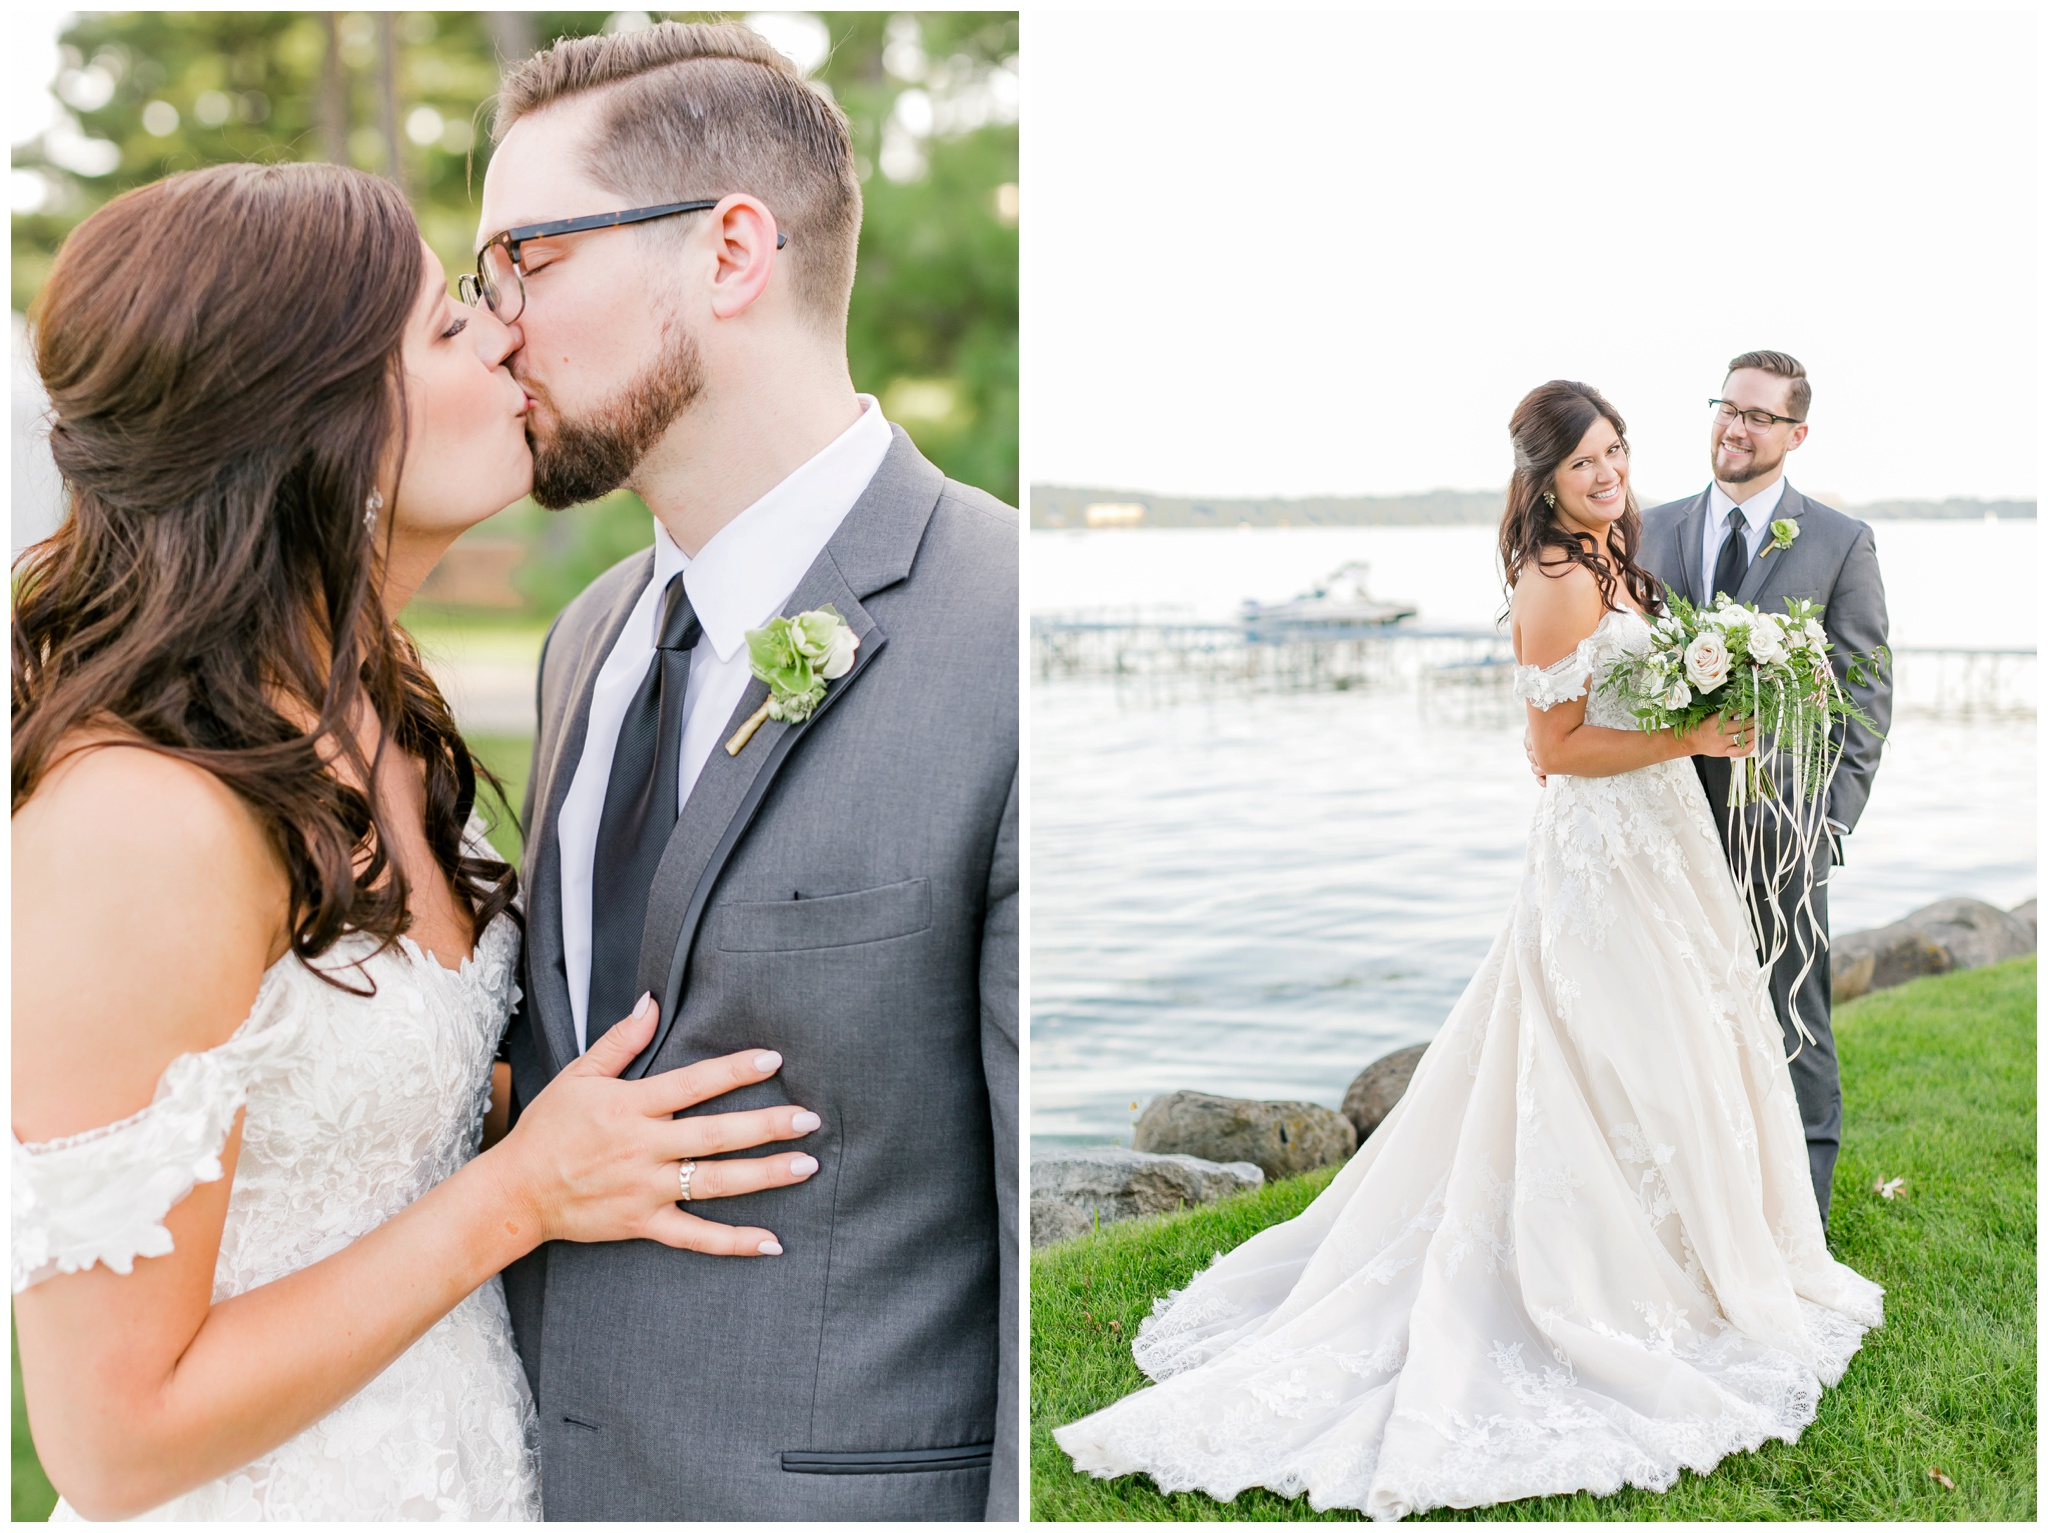 bishops_bay_country_club_wedding_middleton_wisconsin_caynay_photo_4739.jpg